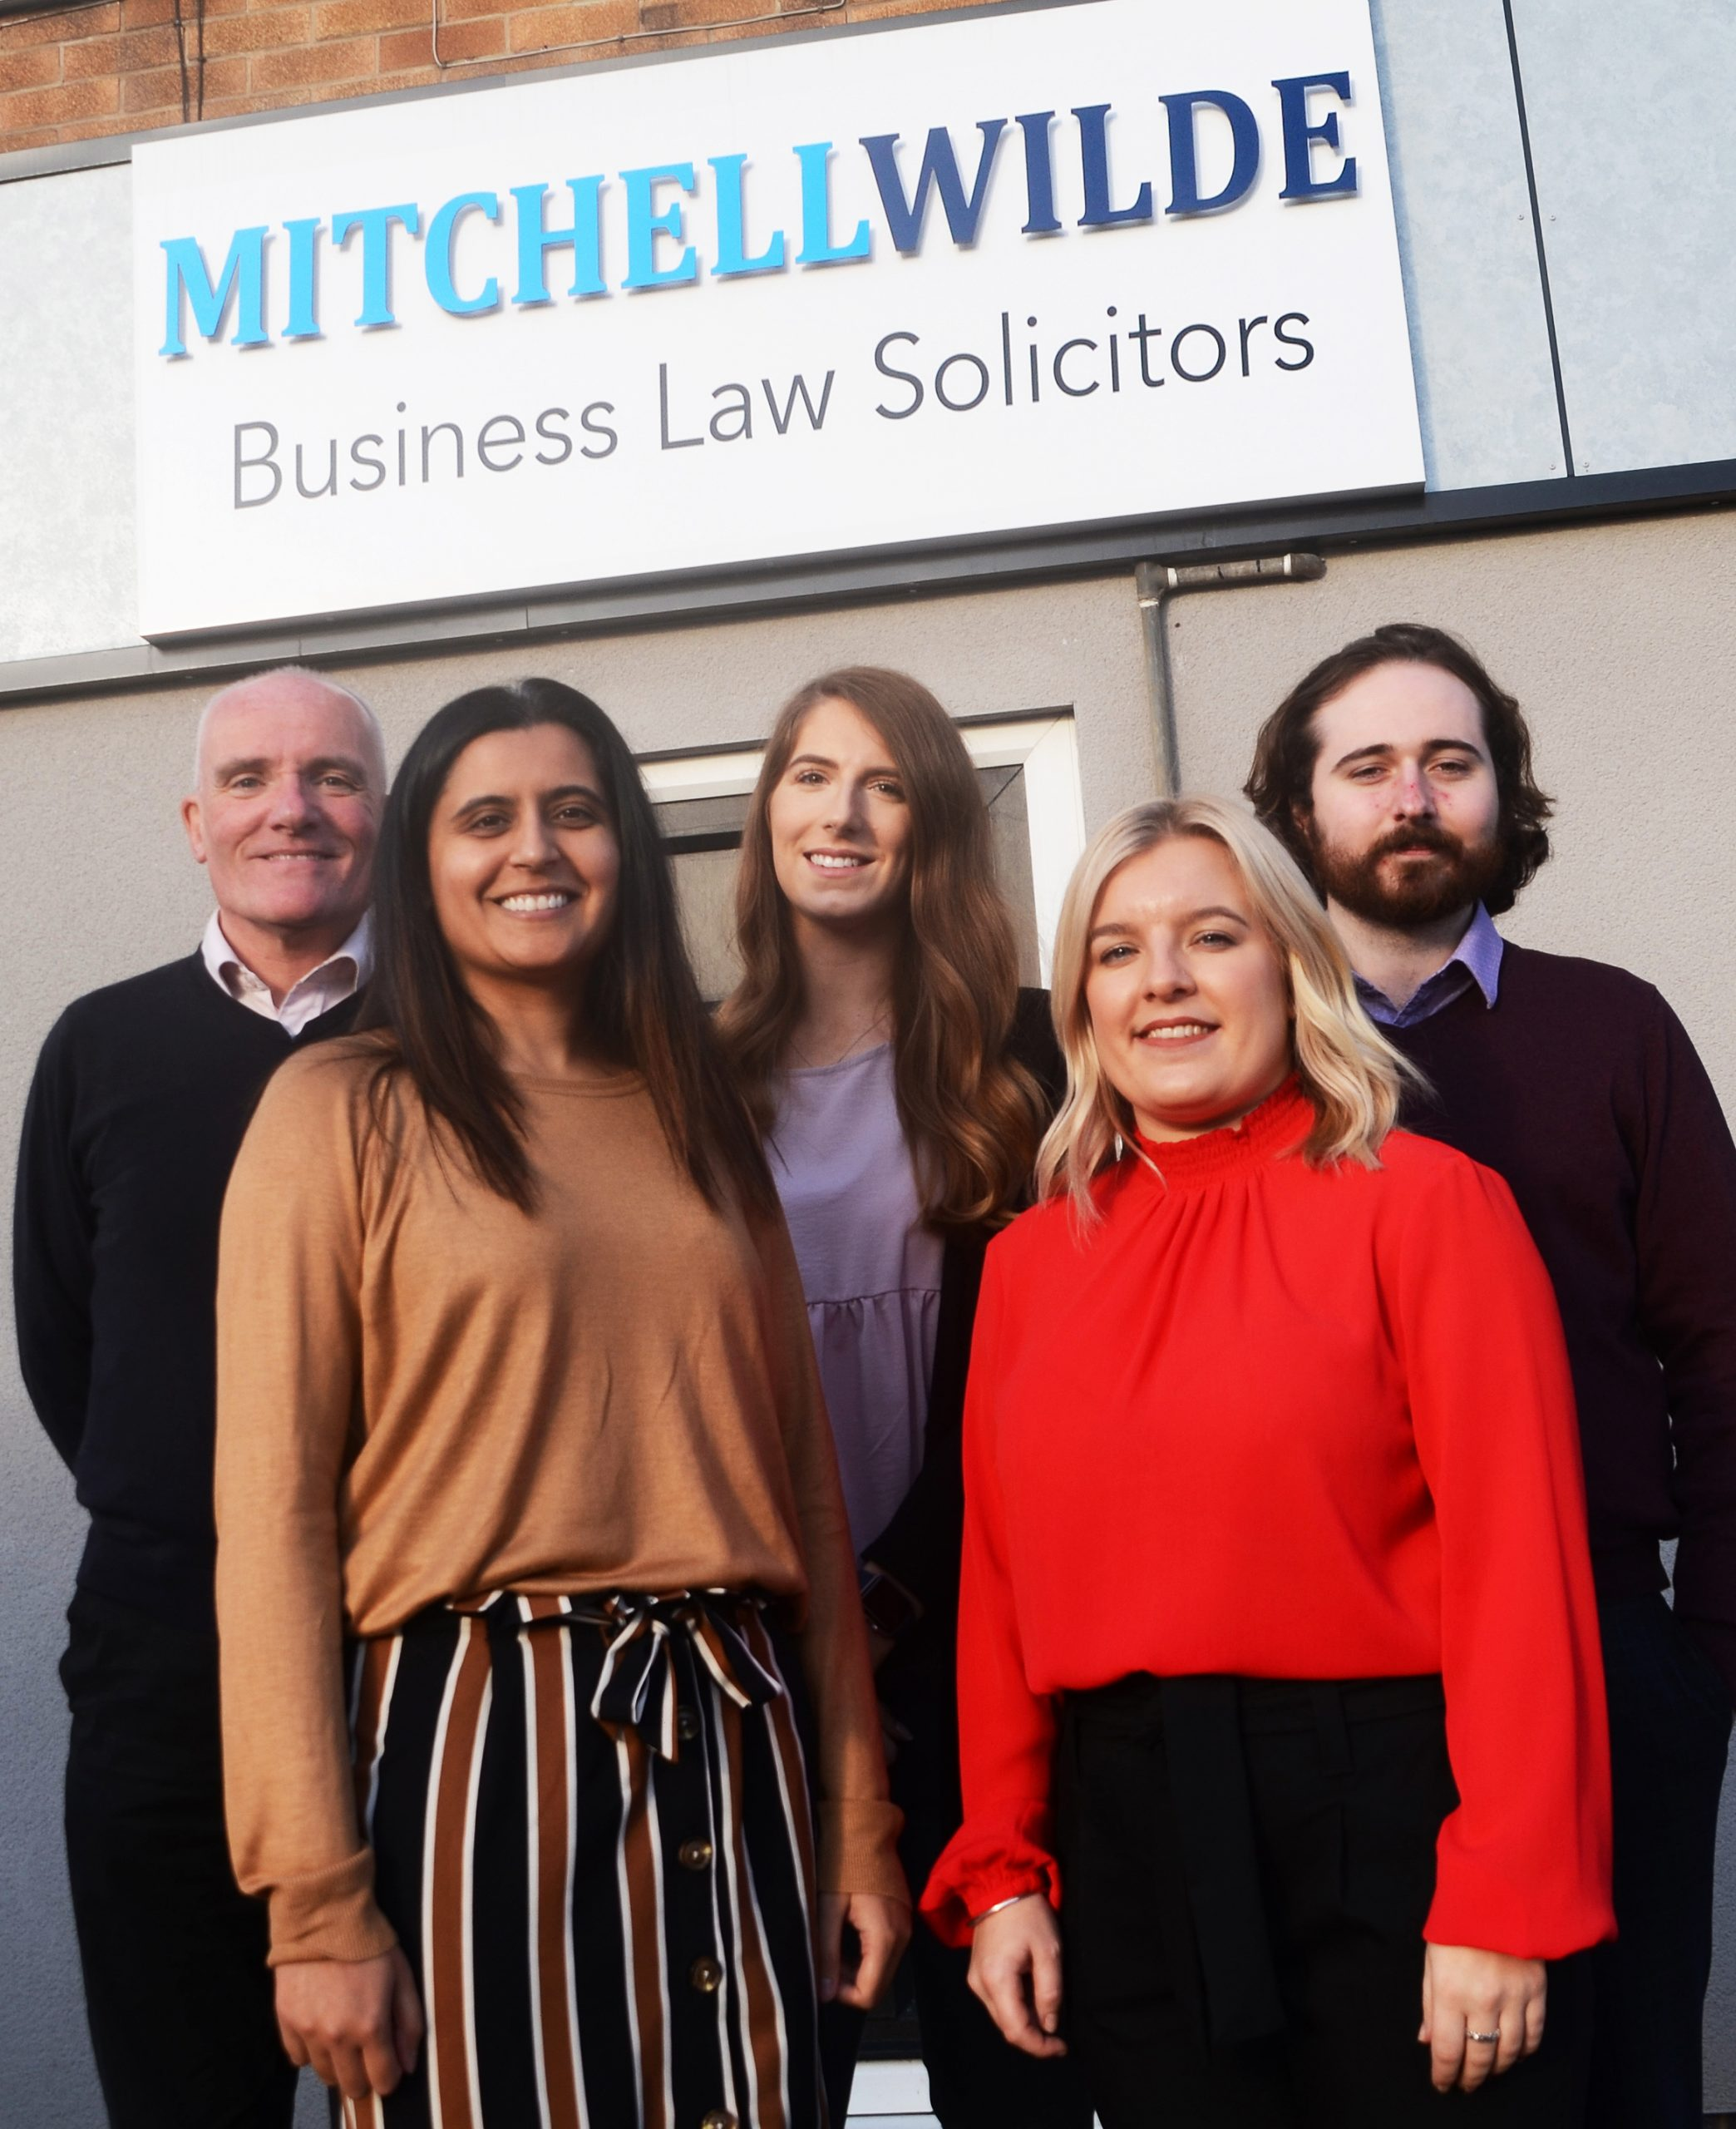 mitchell wilde business law solicitors